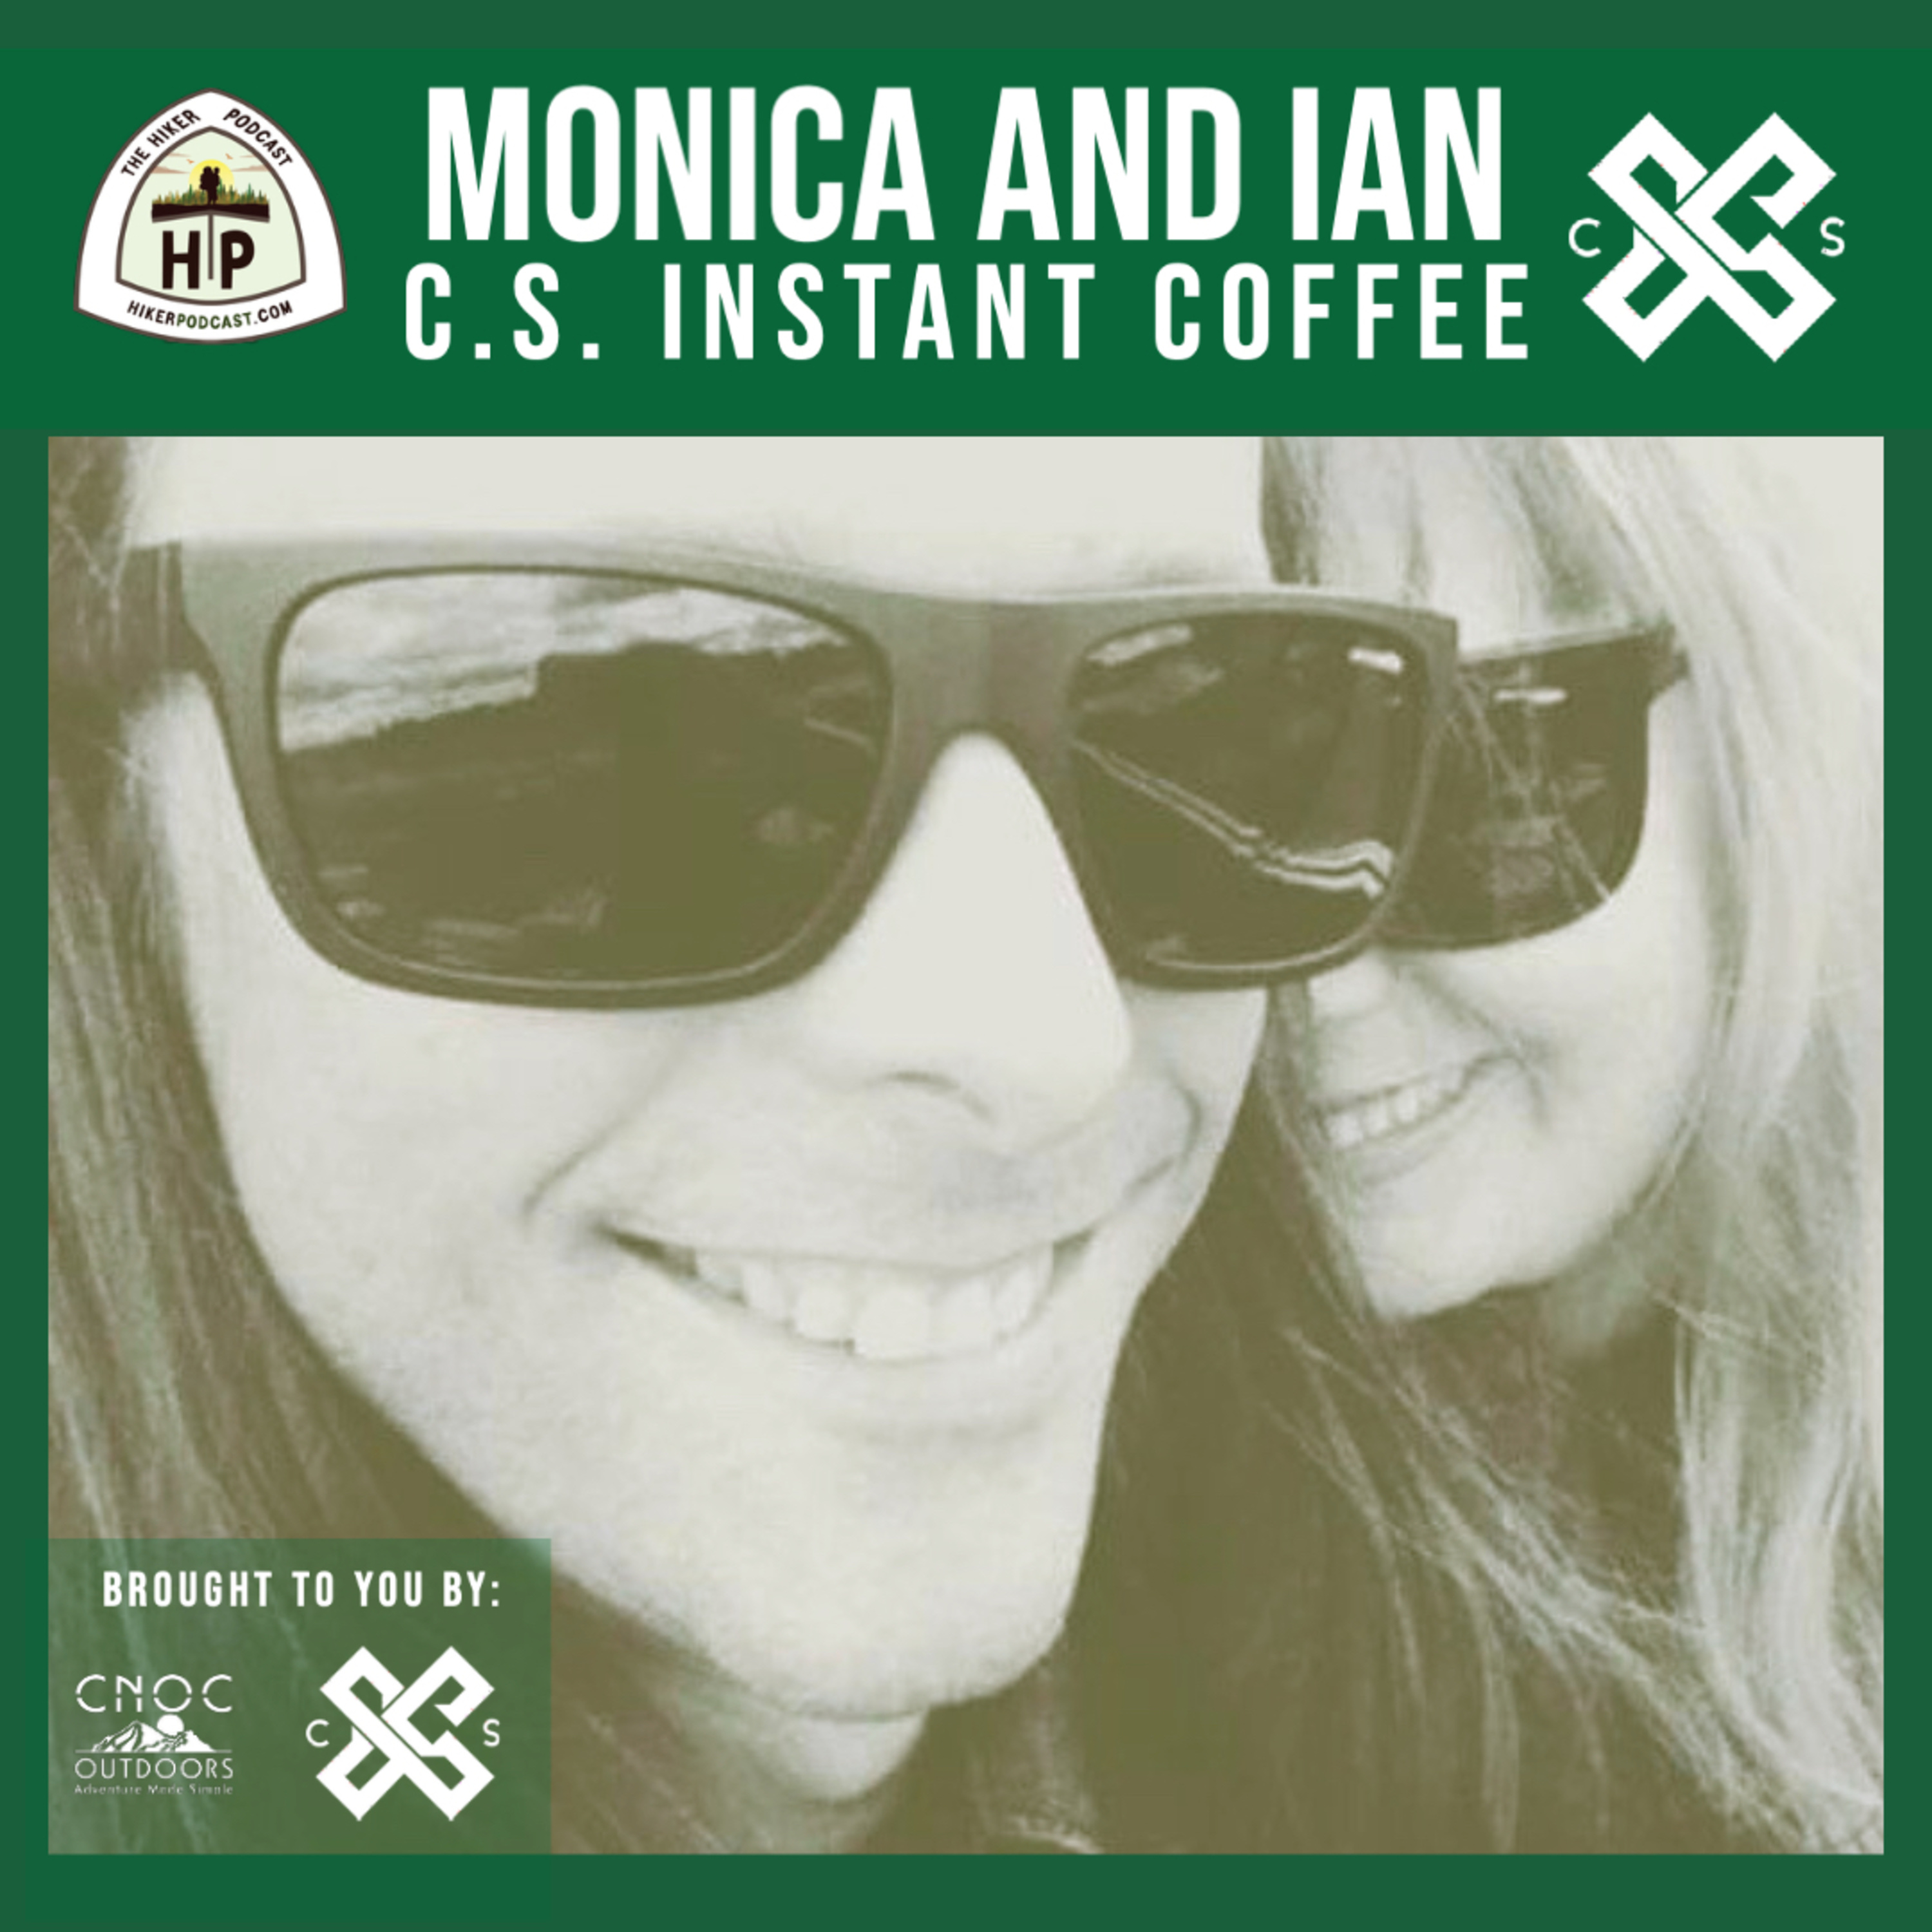 Monica and Ian of C.S. Instant Coffee | The Hiker Podcast S2E24